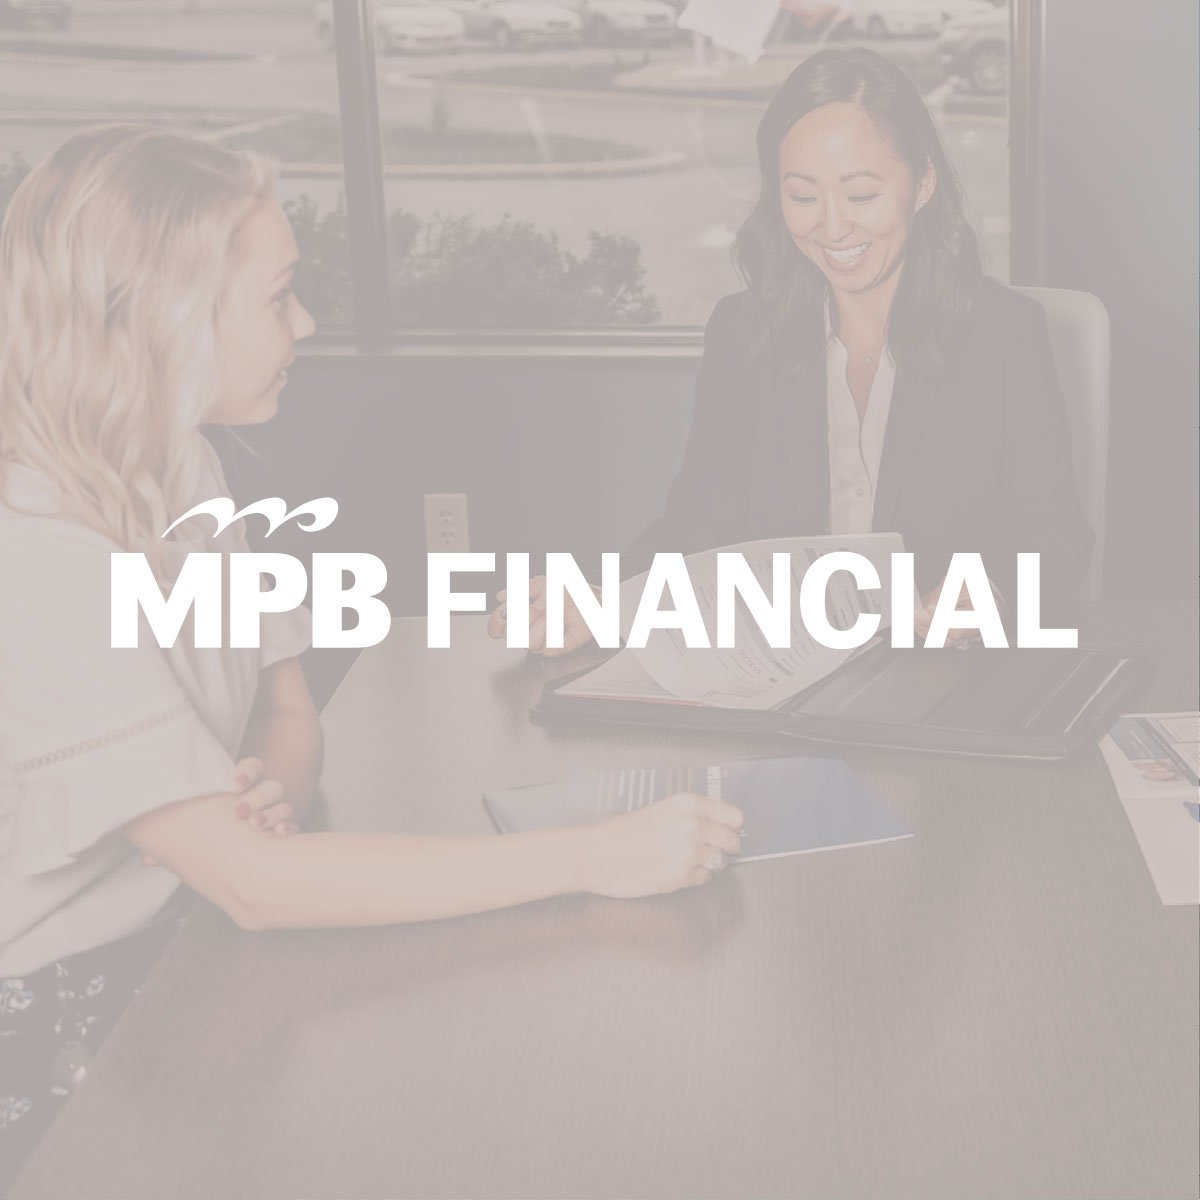 logo overlaying image of team designed for MPB Financial brand